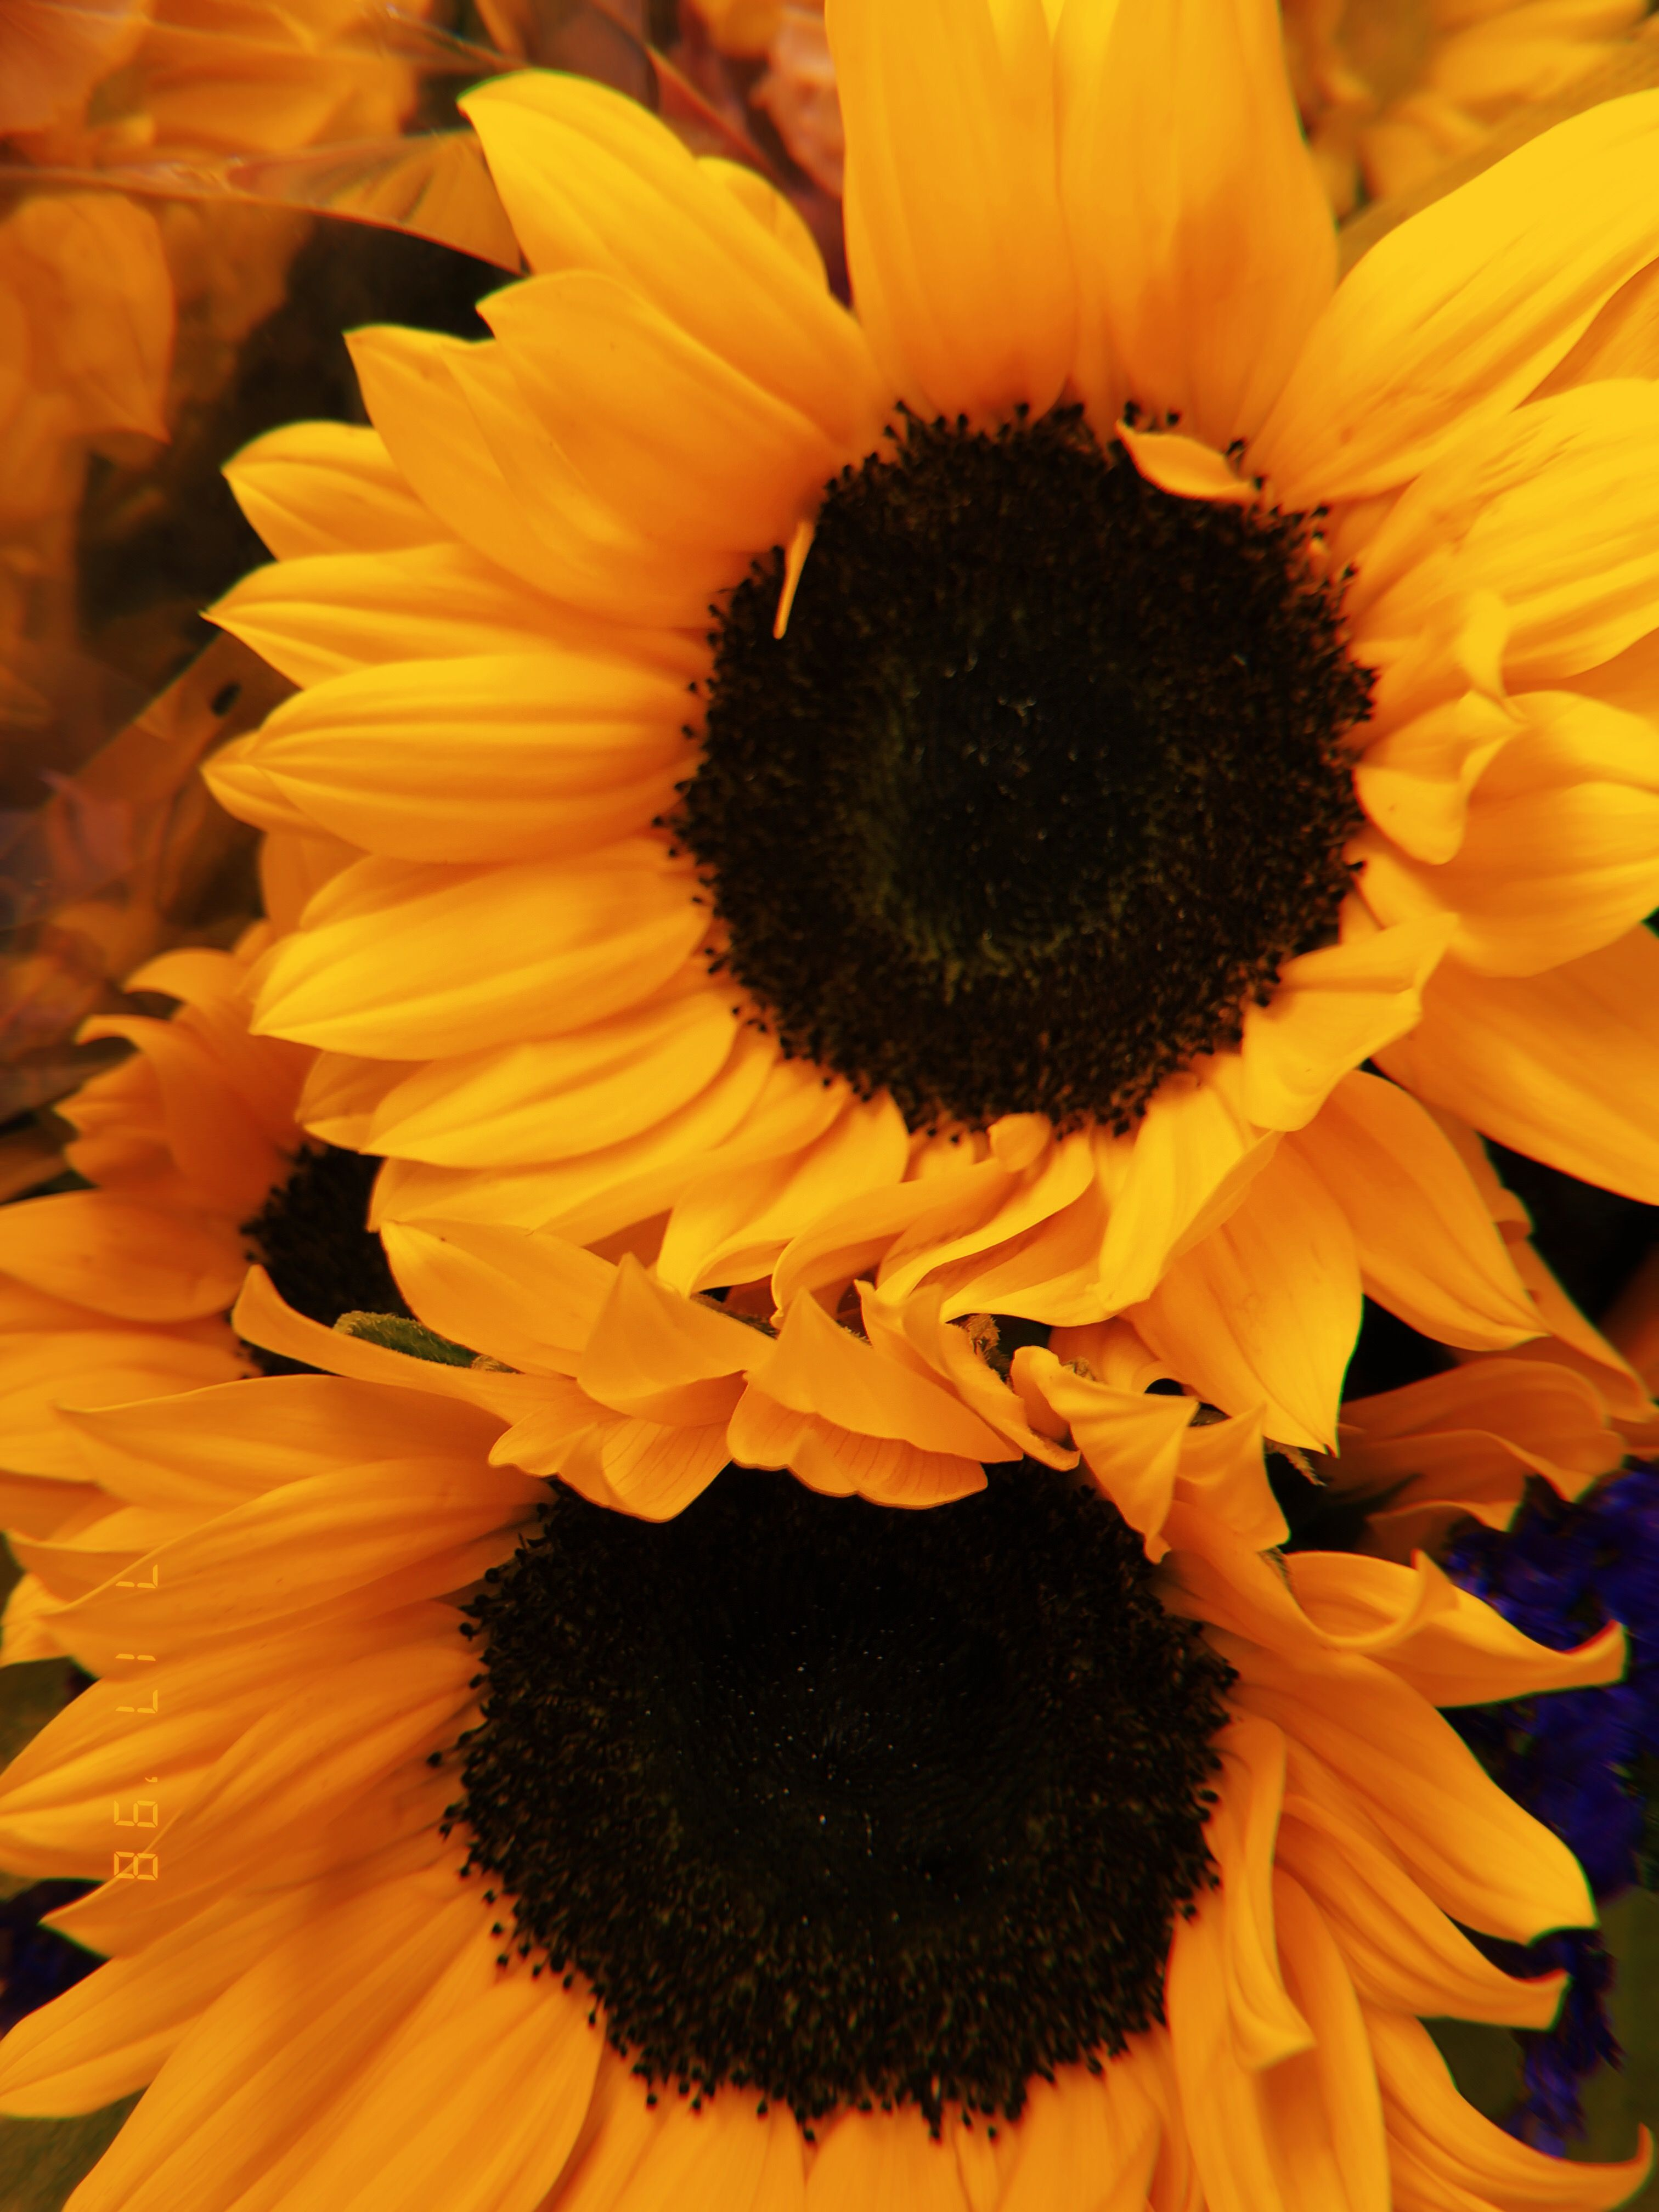 Sunflower Flower Yellow Aesthetic 新垣結衣 ショートボブ Anime Yellow Aesthetic Yellow Flowers Sunflower Pictures